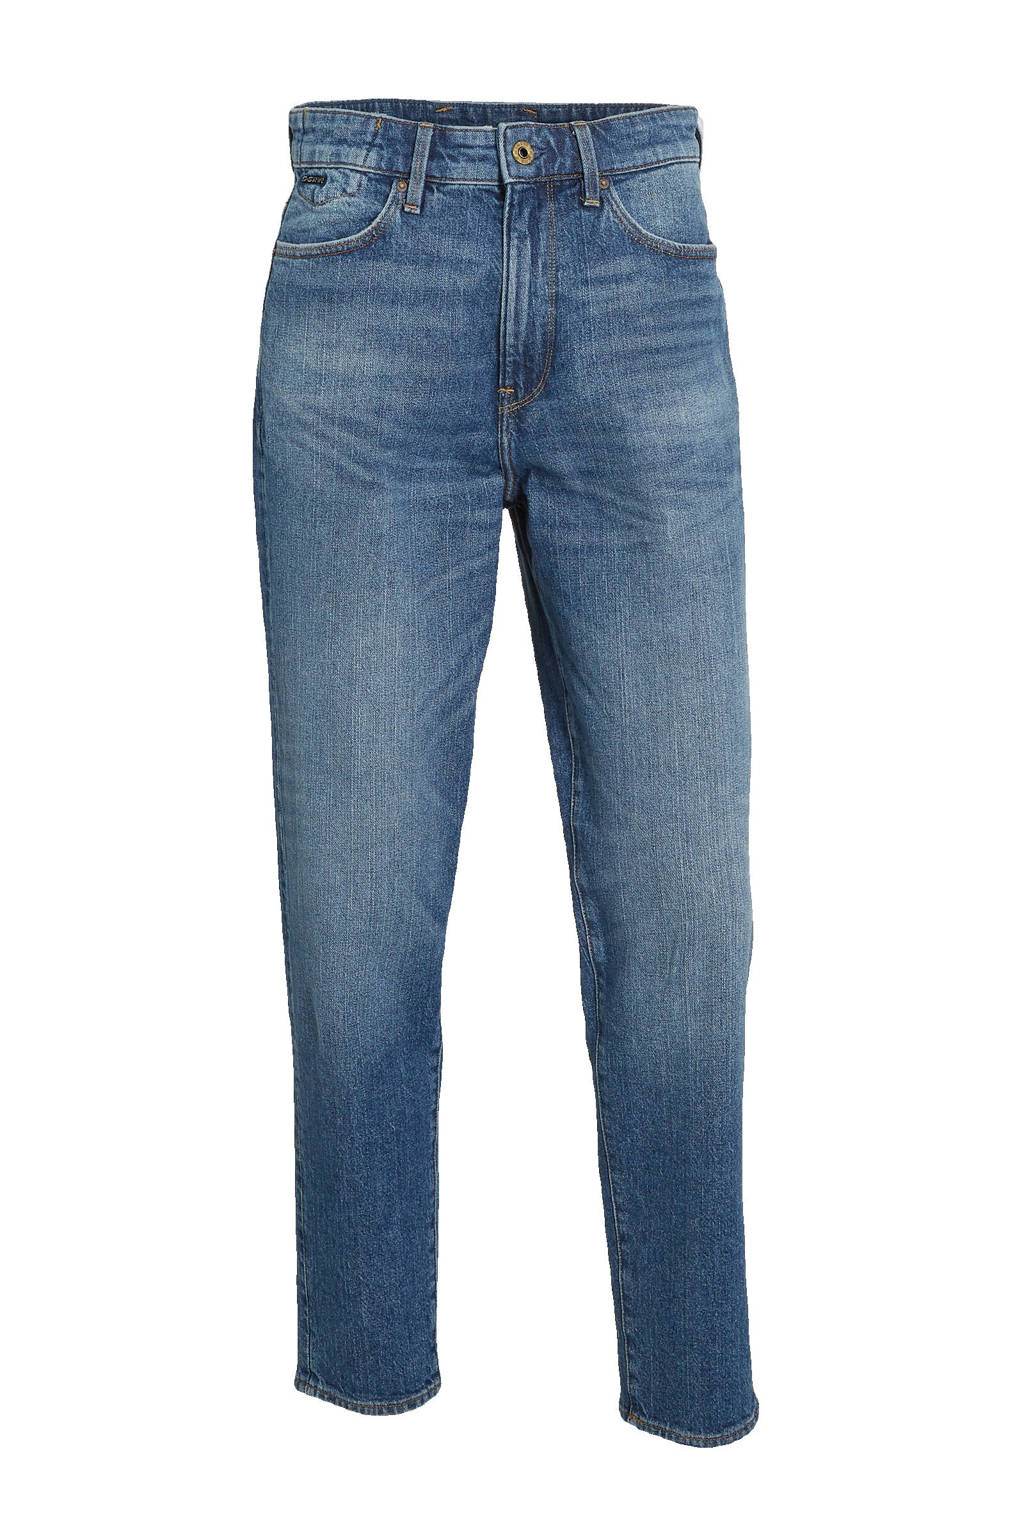 G-Star RAW Janeh high waist mom jeans faded riverblue, Faded Riverblue